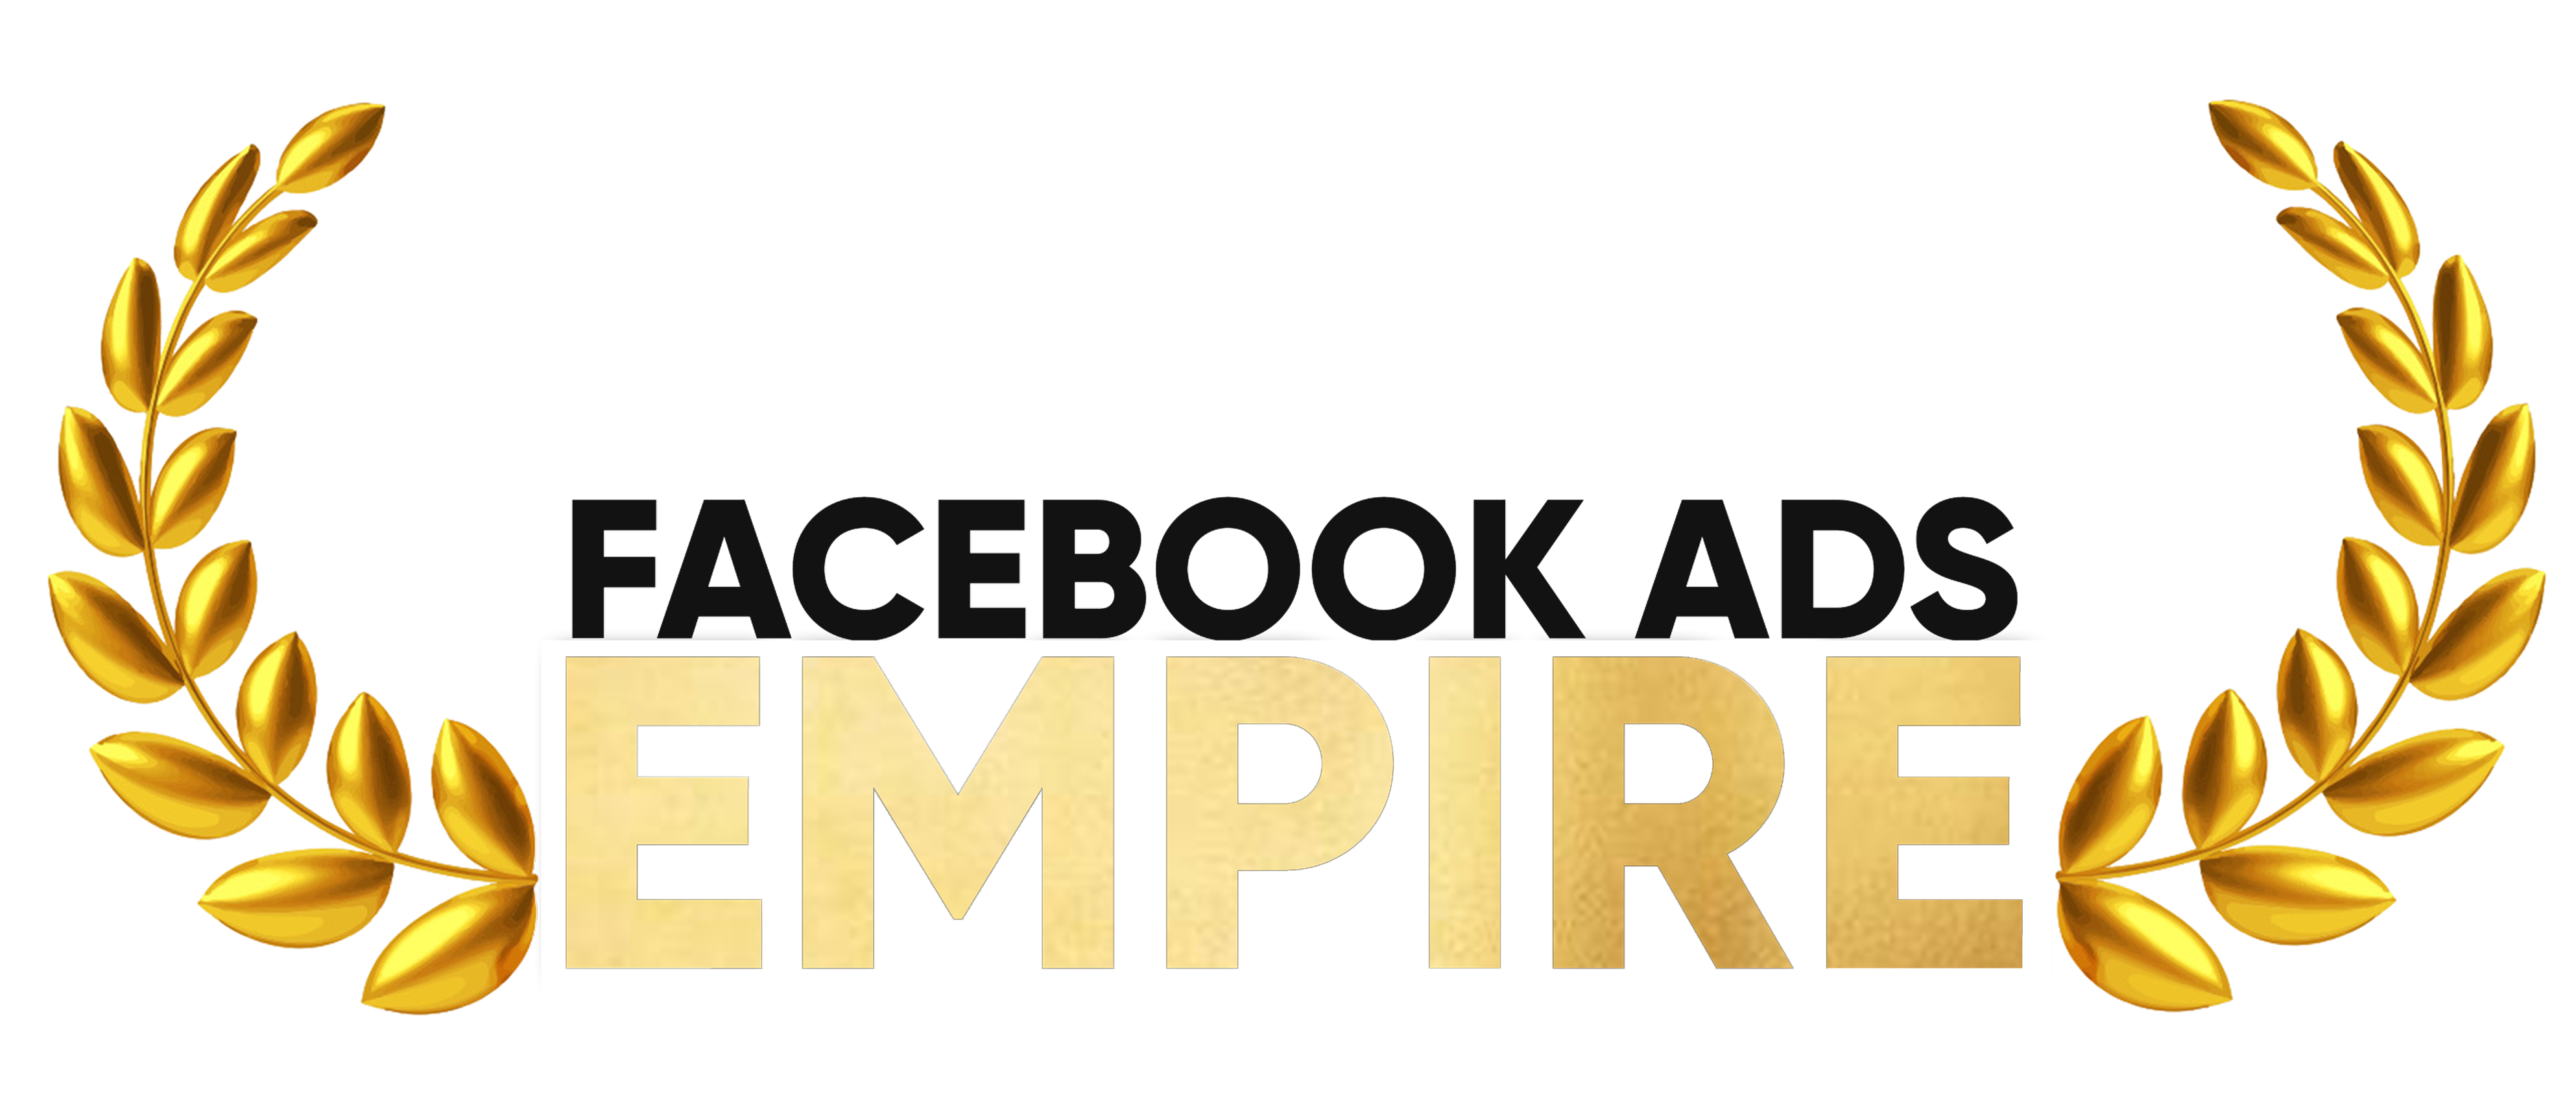 Facebook Ads Empire